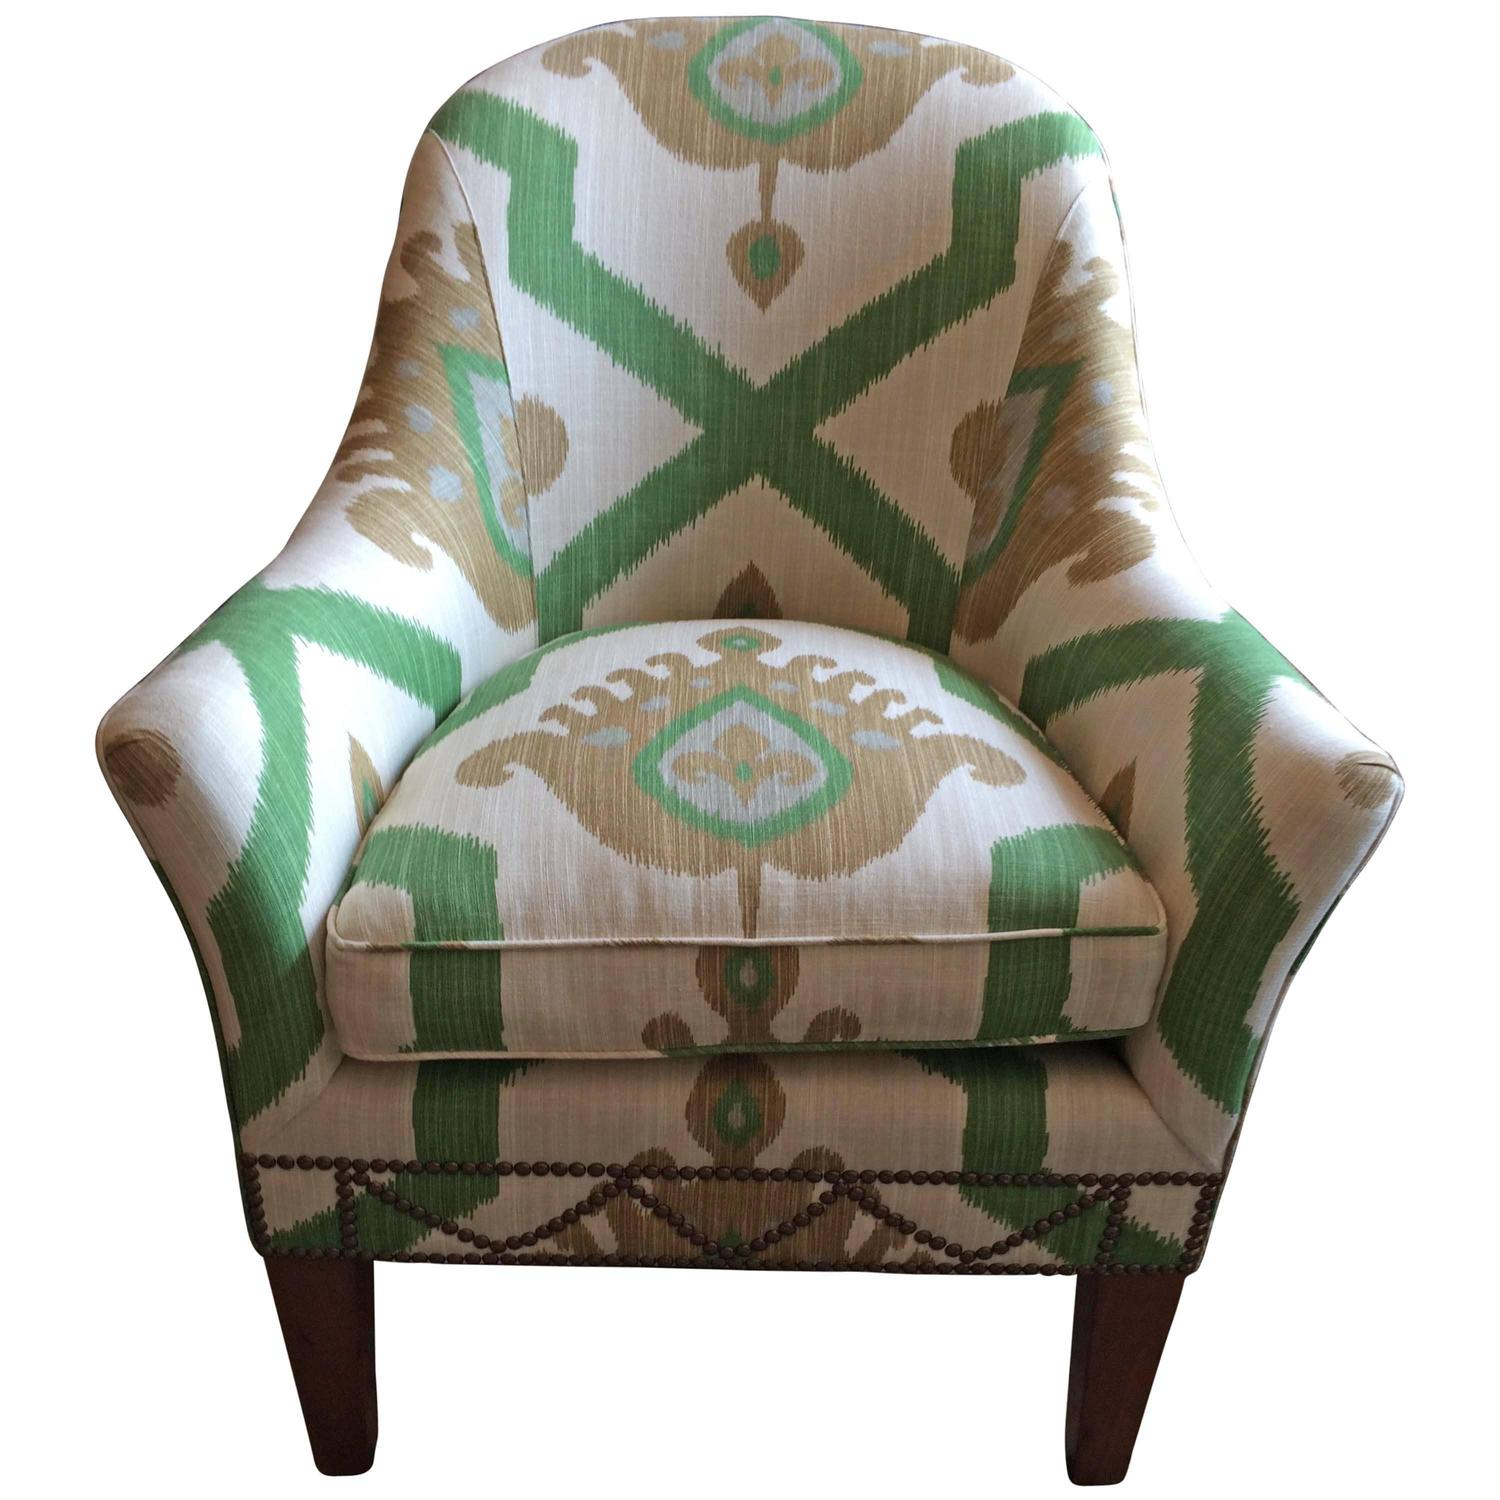 Striking Vintage Ikat Upholstered Club Chair For Sale at